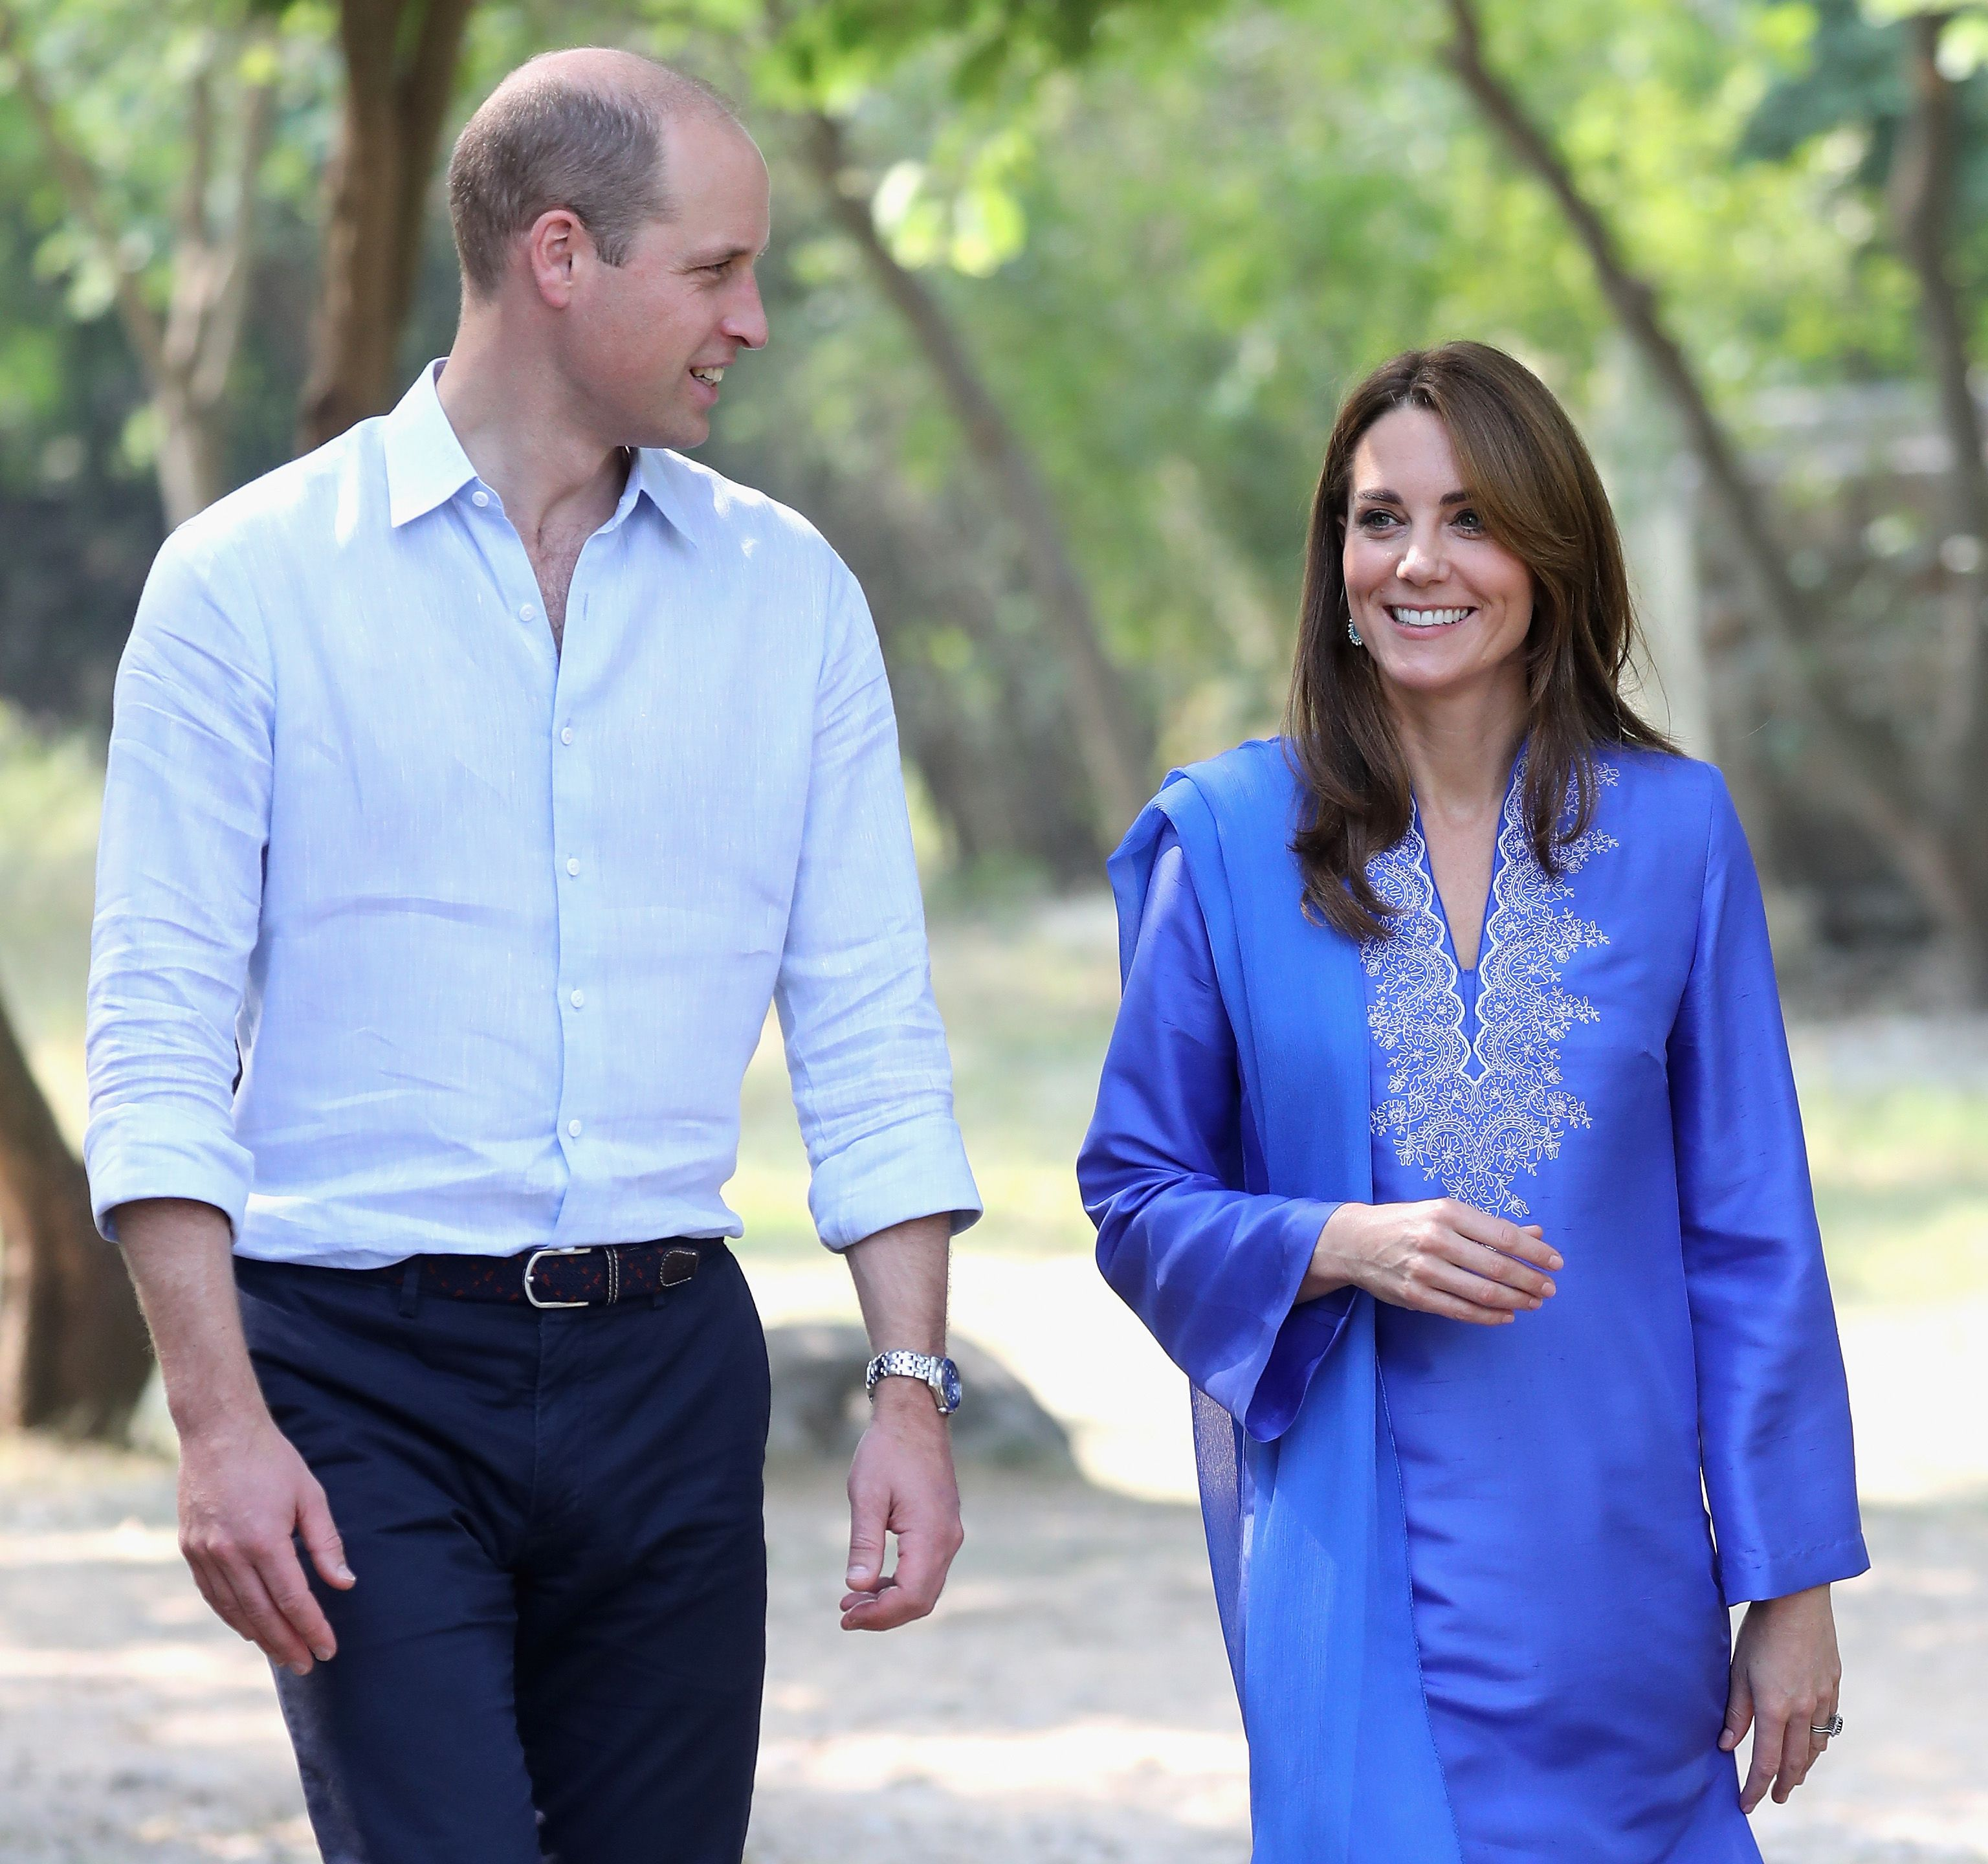 Kate Middleton Steps Out in a Periwinkle Blue Kurta on Her Second Day in Pakistan